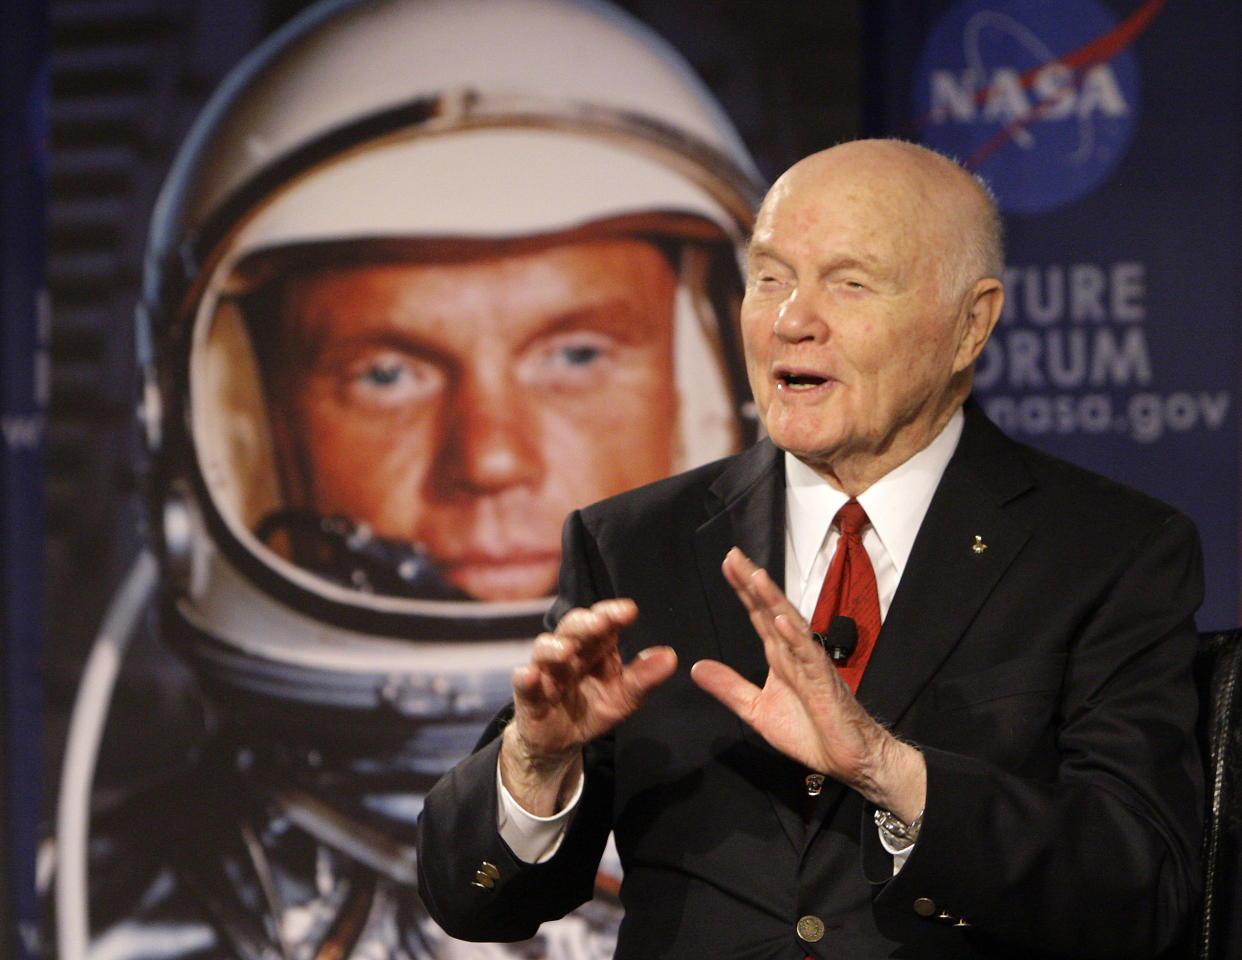 """Sen. John Glenn talks, via satellite, with the astronauts on the International Space Station, before the start of a roundtable discussion titled """"Learning from the Past to Innovate for the Future"""" Monday, Feb. 20, 2012, in Columbus, Ohio. Glenn was the first American to orbit Earth, piloting Friendship 7 around it three times in 1962, and also became the oldest person in space, at age 77, by orbiting Earth with six astronauts aboard shuttle Discovery in 1998. (AP Photo/Jay LaPrete)"""